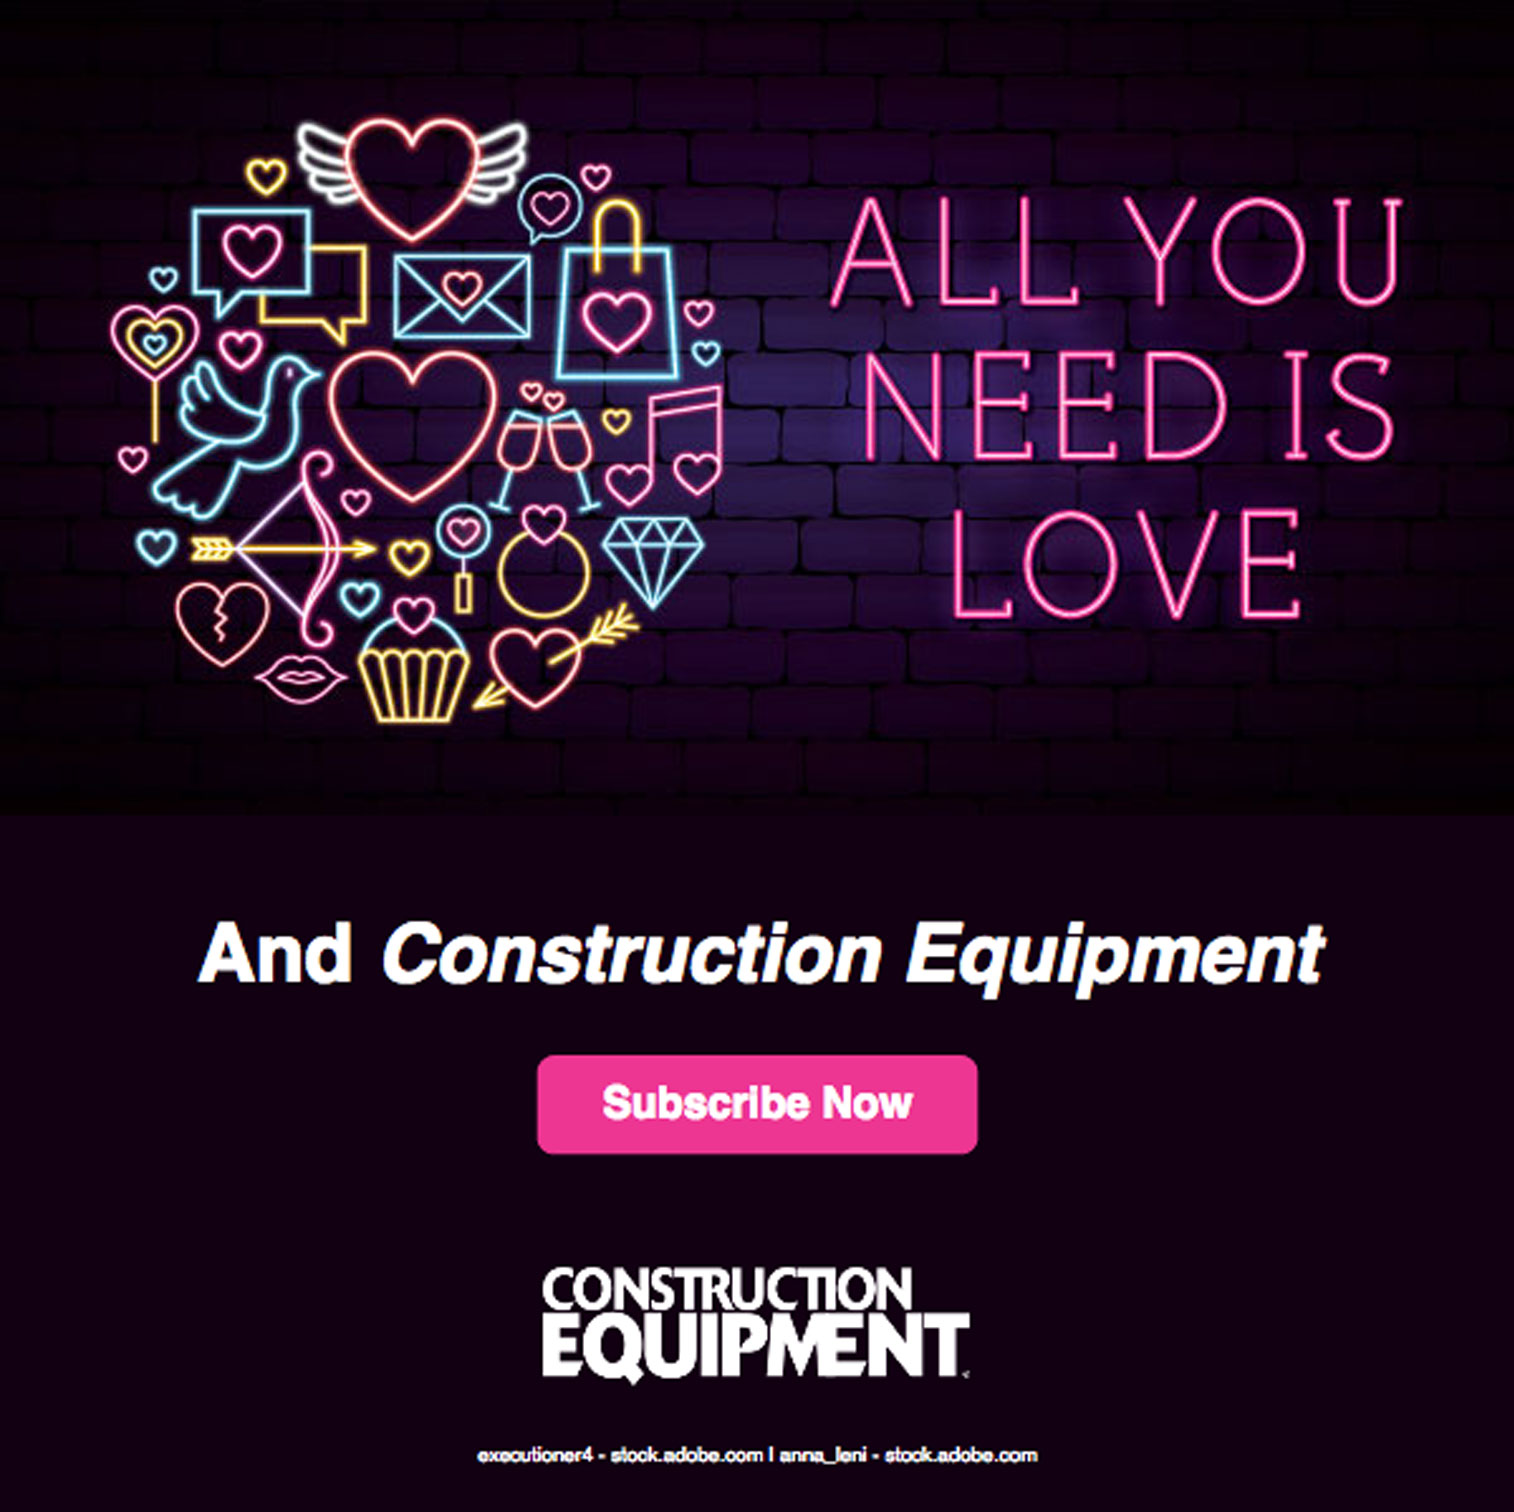 Construction Equipment Subscription Email